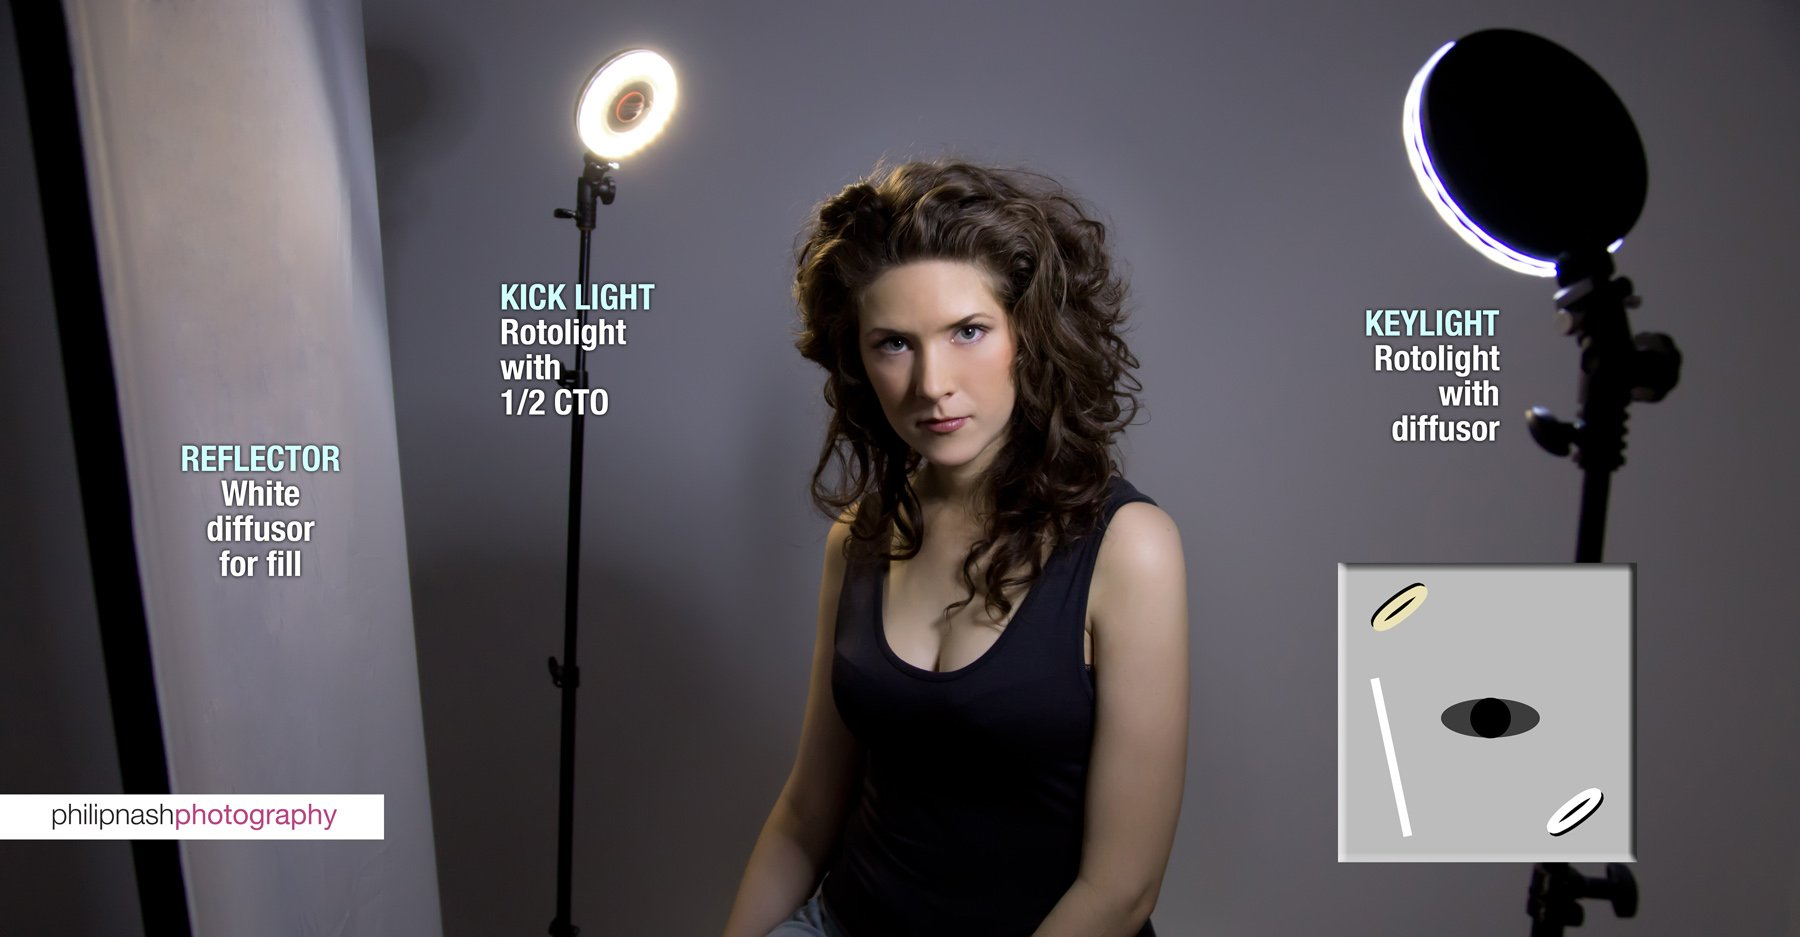 Rotolight Interview Lighting Kit with 2 HD LED Stealth Ringlights, 2 Stands Color Filters Also Includes Belt Pouch by ROTOLIGHT (Image #6)